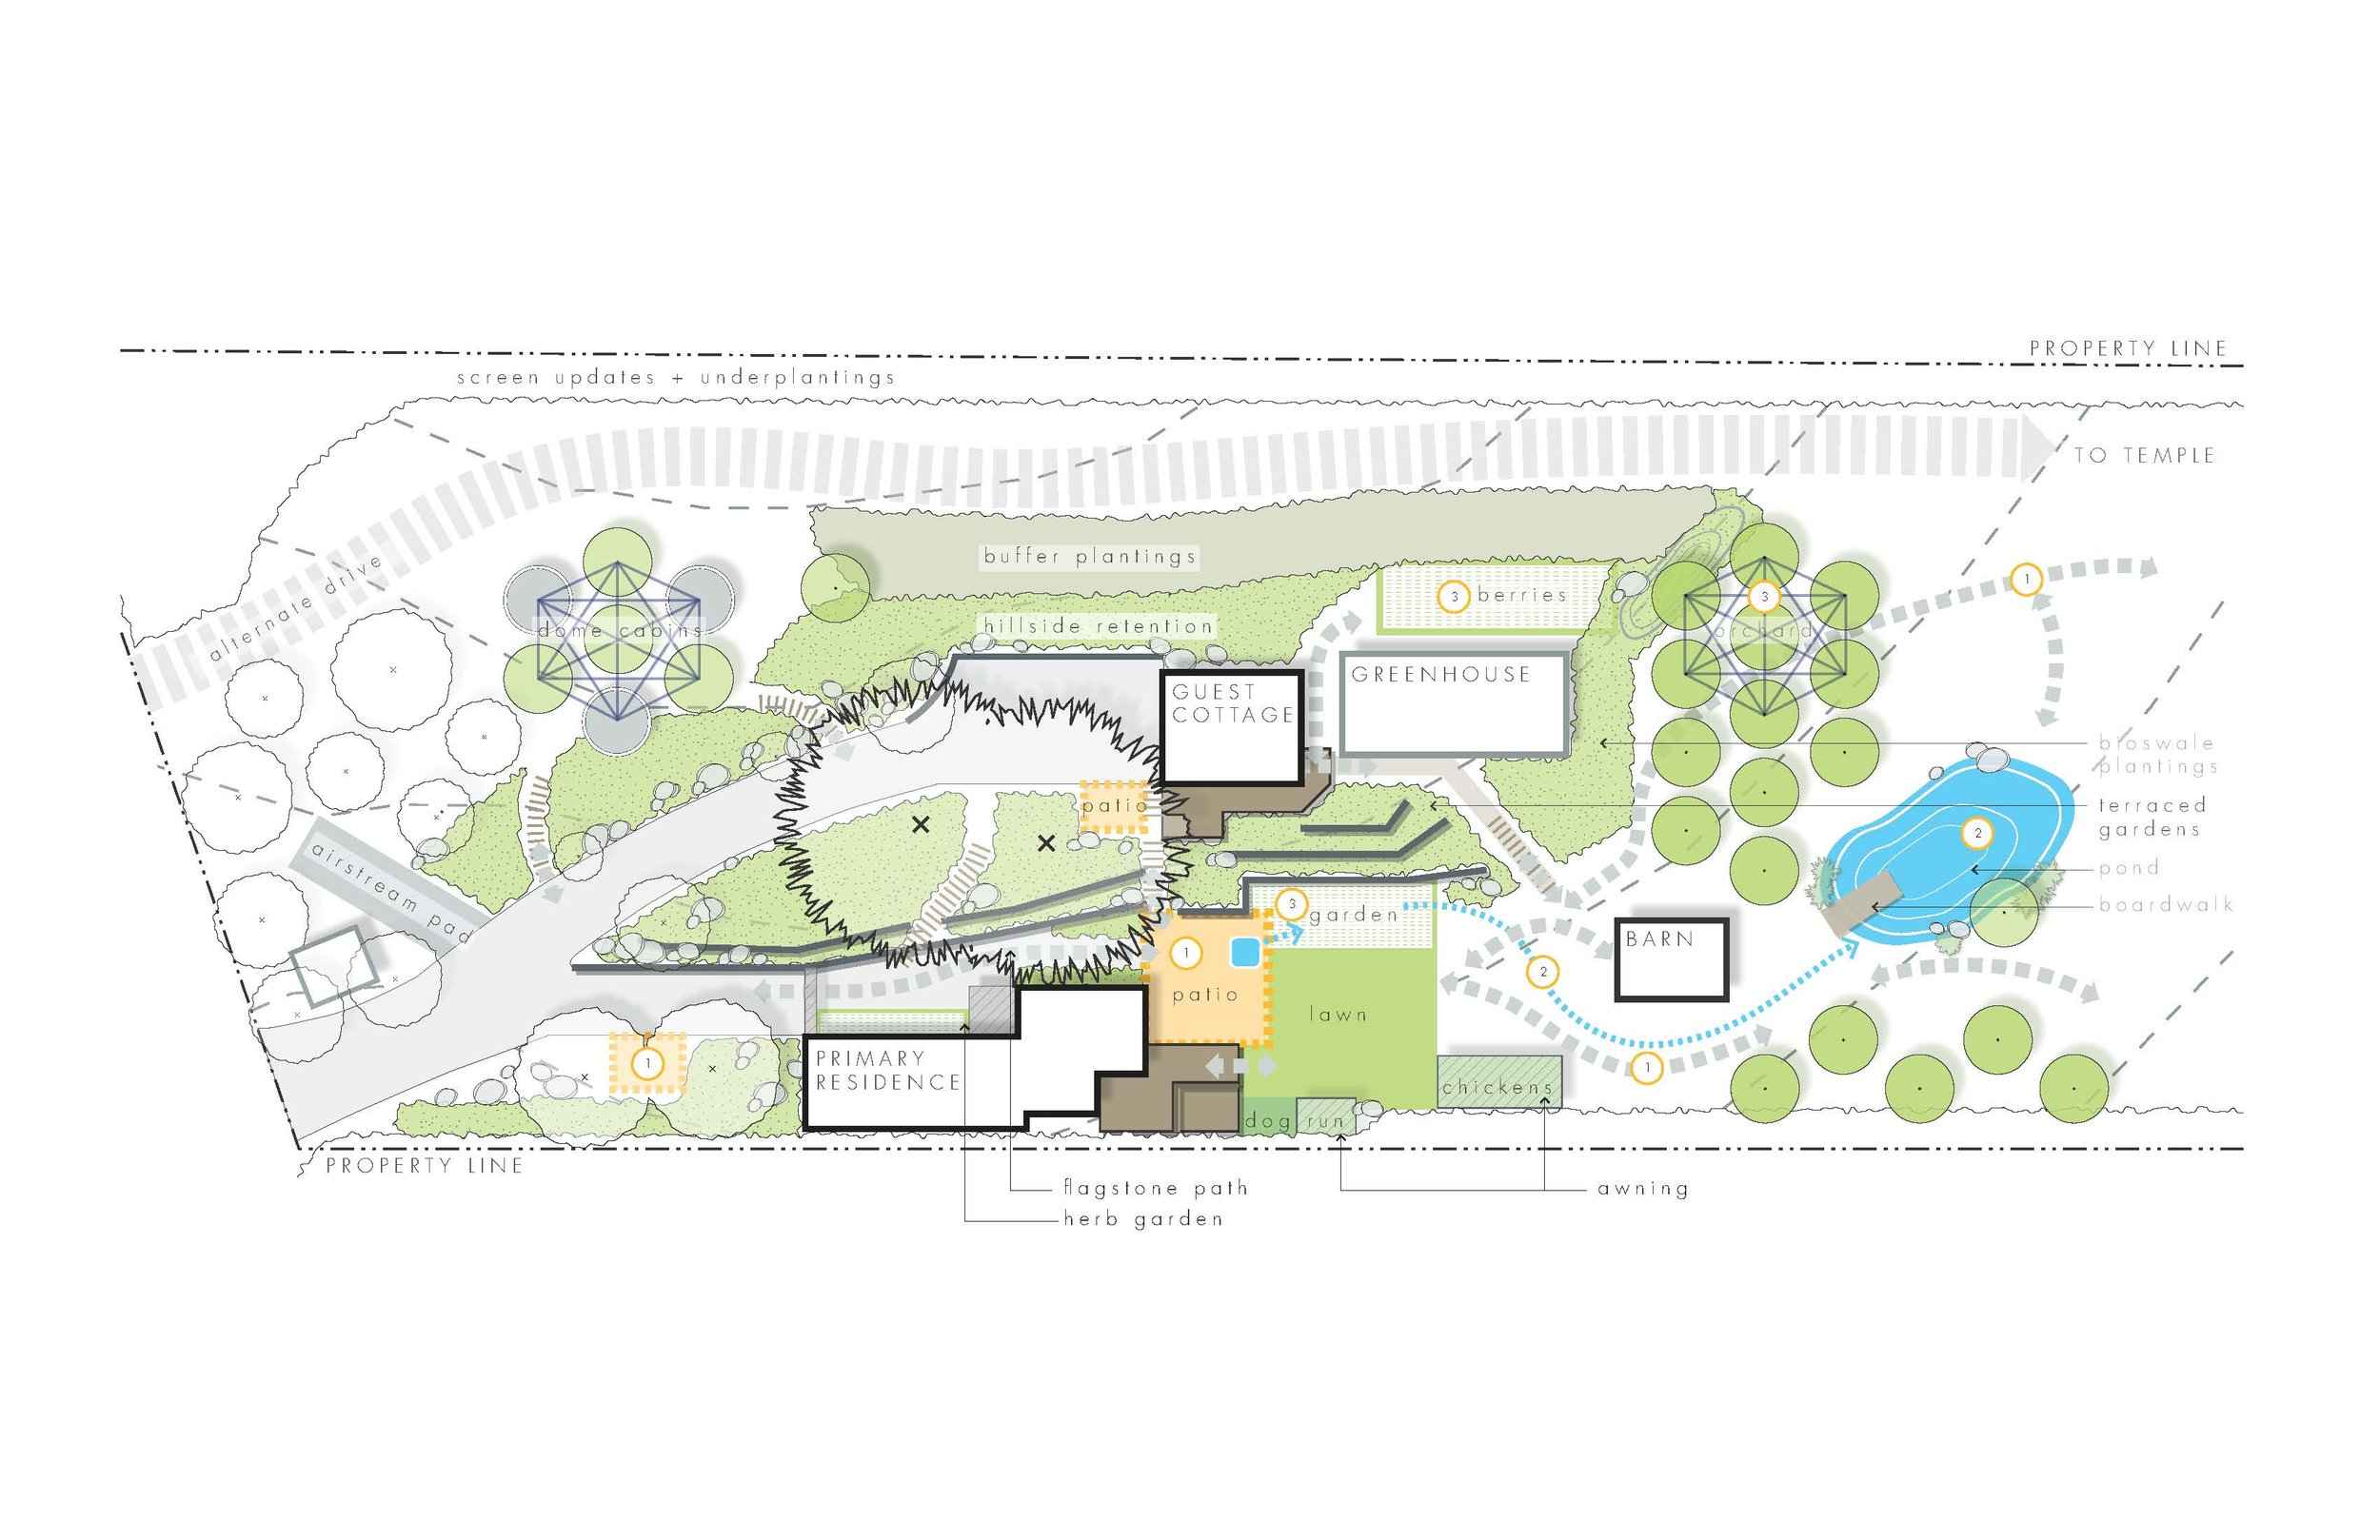 hight resolution of master plan example conceptual layout site planning landscape architecture schematic southern oregon